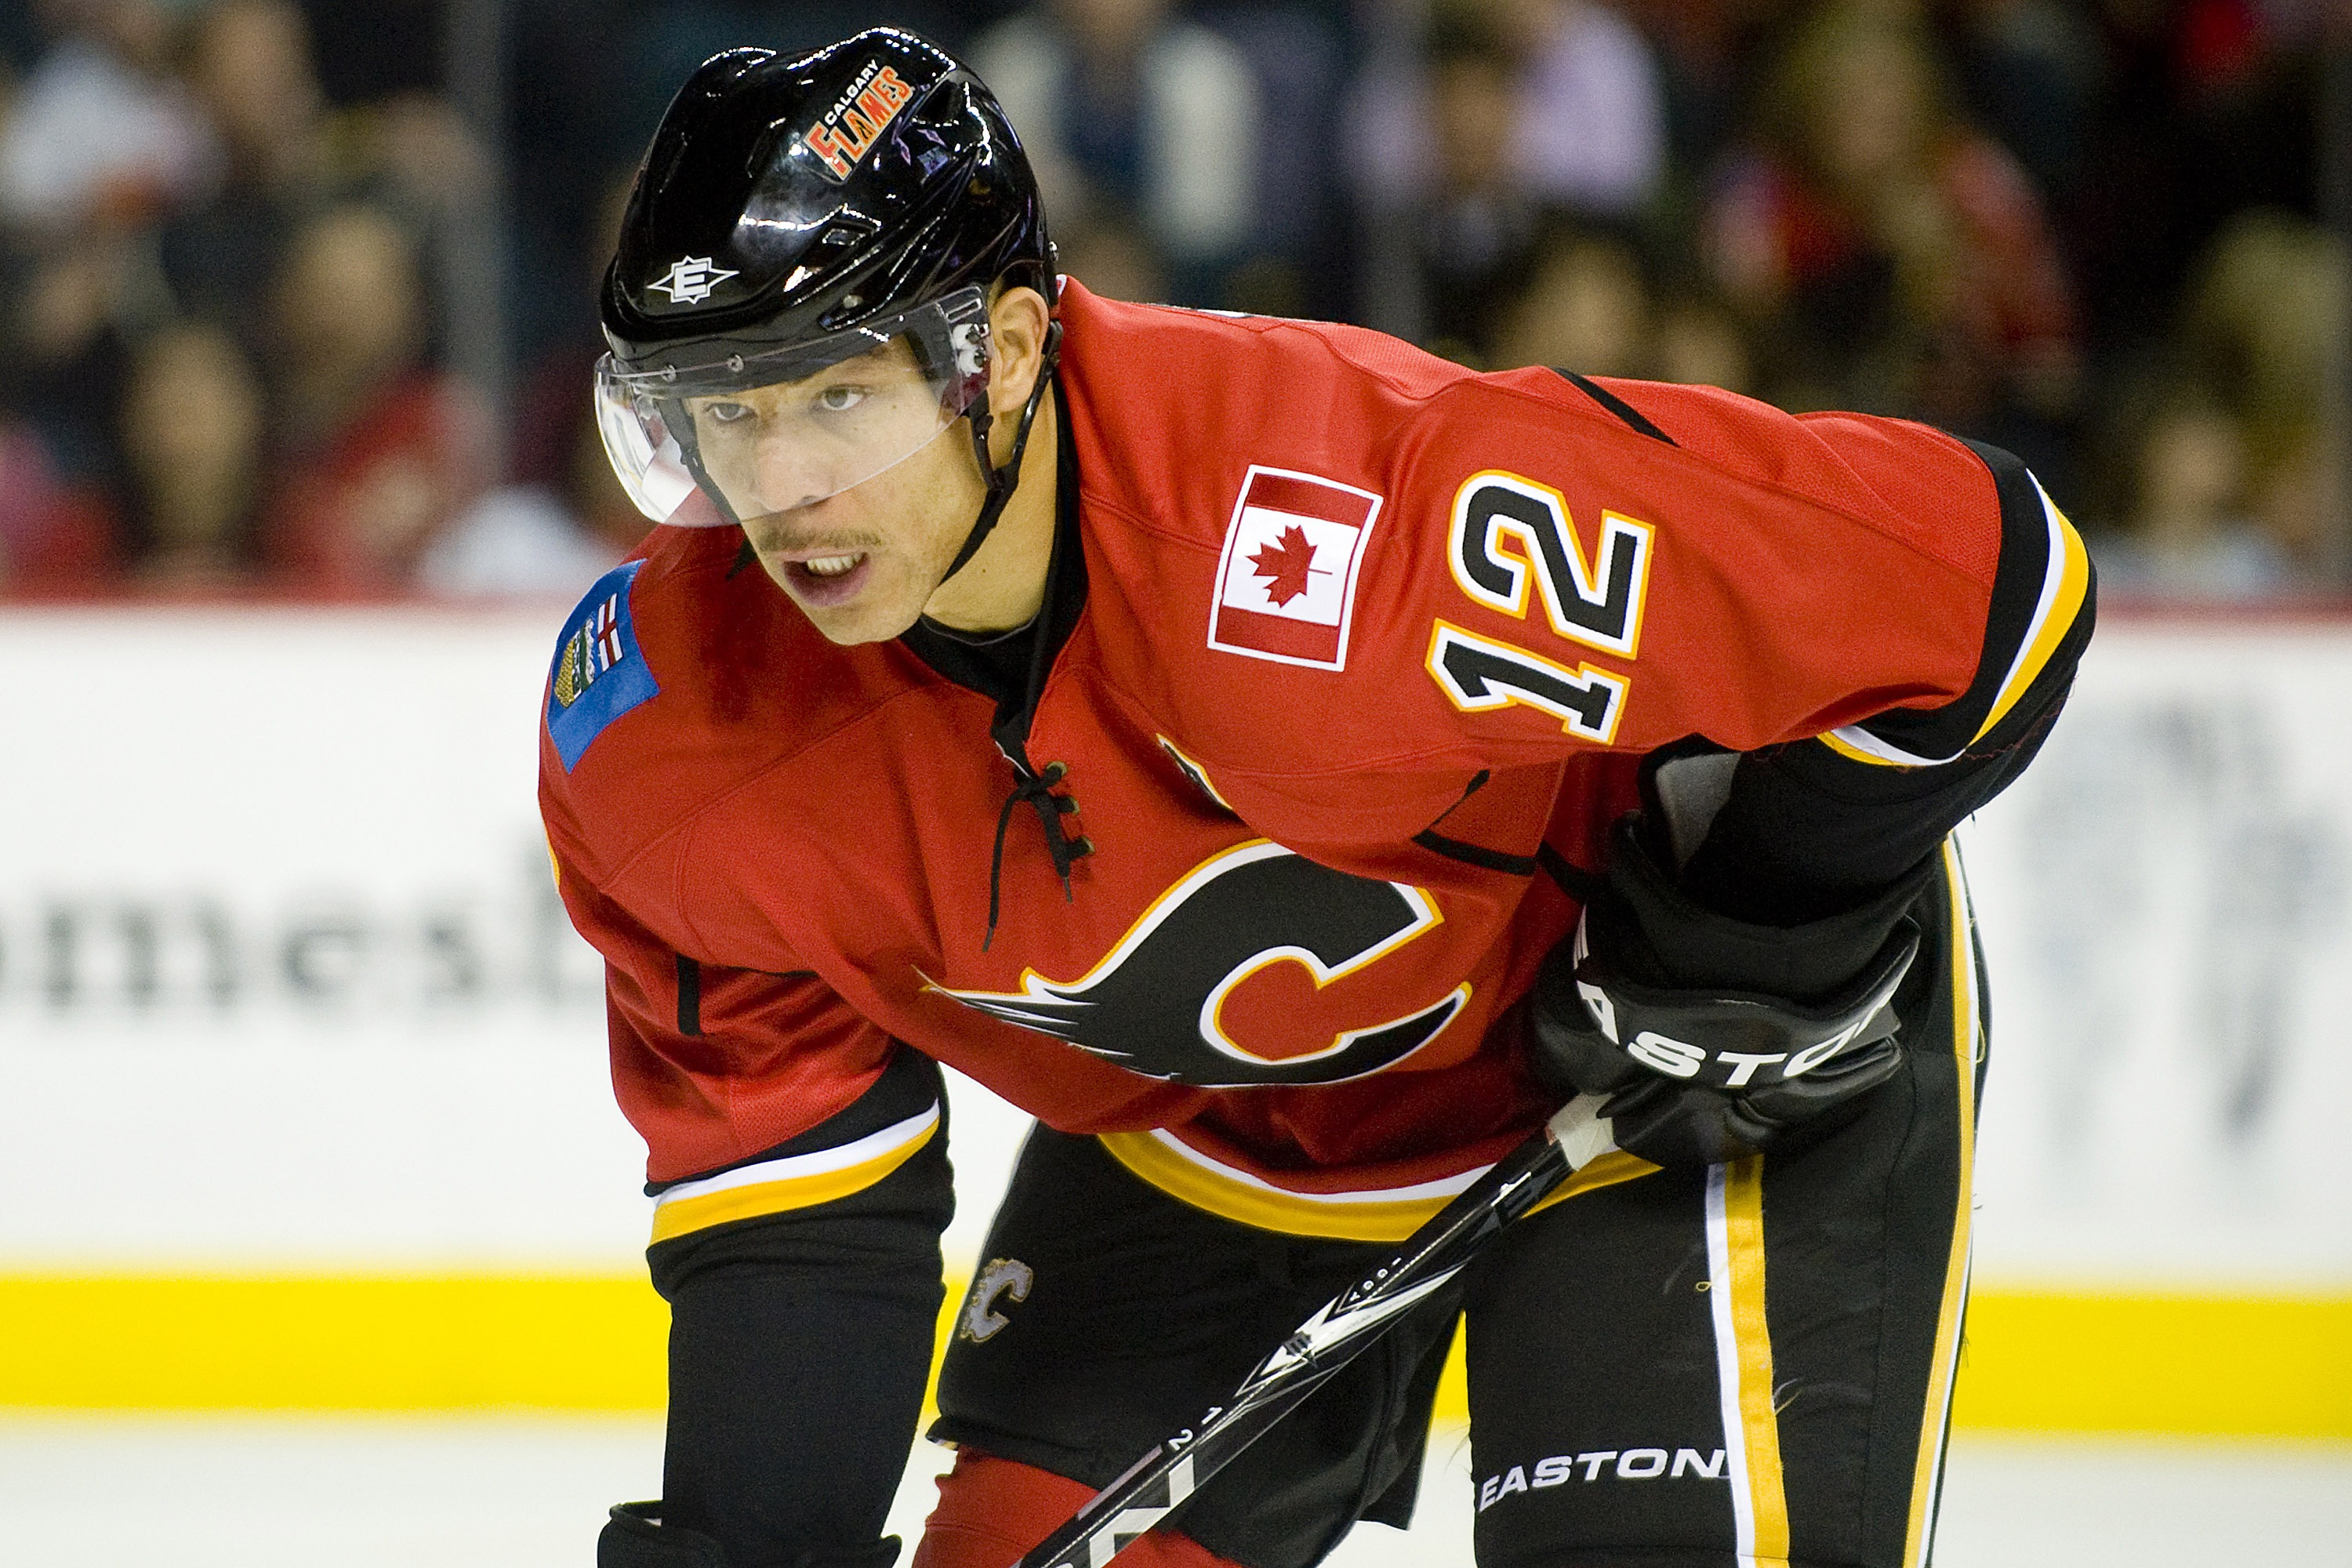 EDMONTON, AB - NOVEMBER 29:  Jarome Iginla #12 of the Calgary Flames concentrates on the puck during a game against the Minnesota Wild at Scotiabank Saddledome on November 29, 2010 in Calgary, Alberta, Canada. The Flames beat the Wild 3-0.  (Photo by Dyla